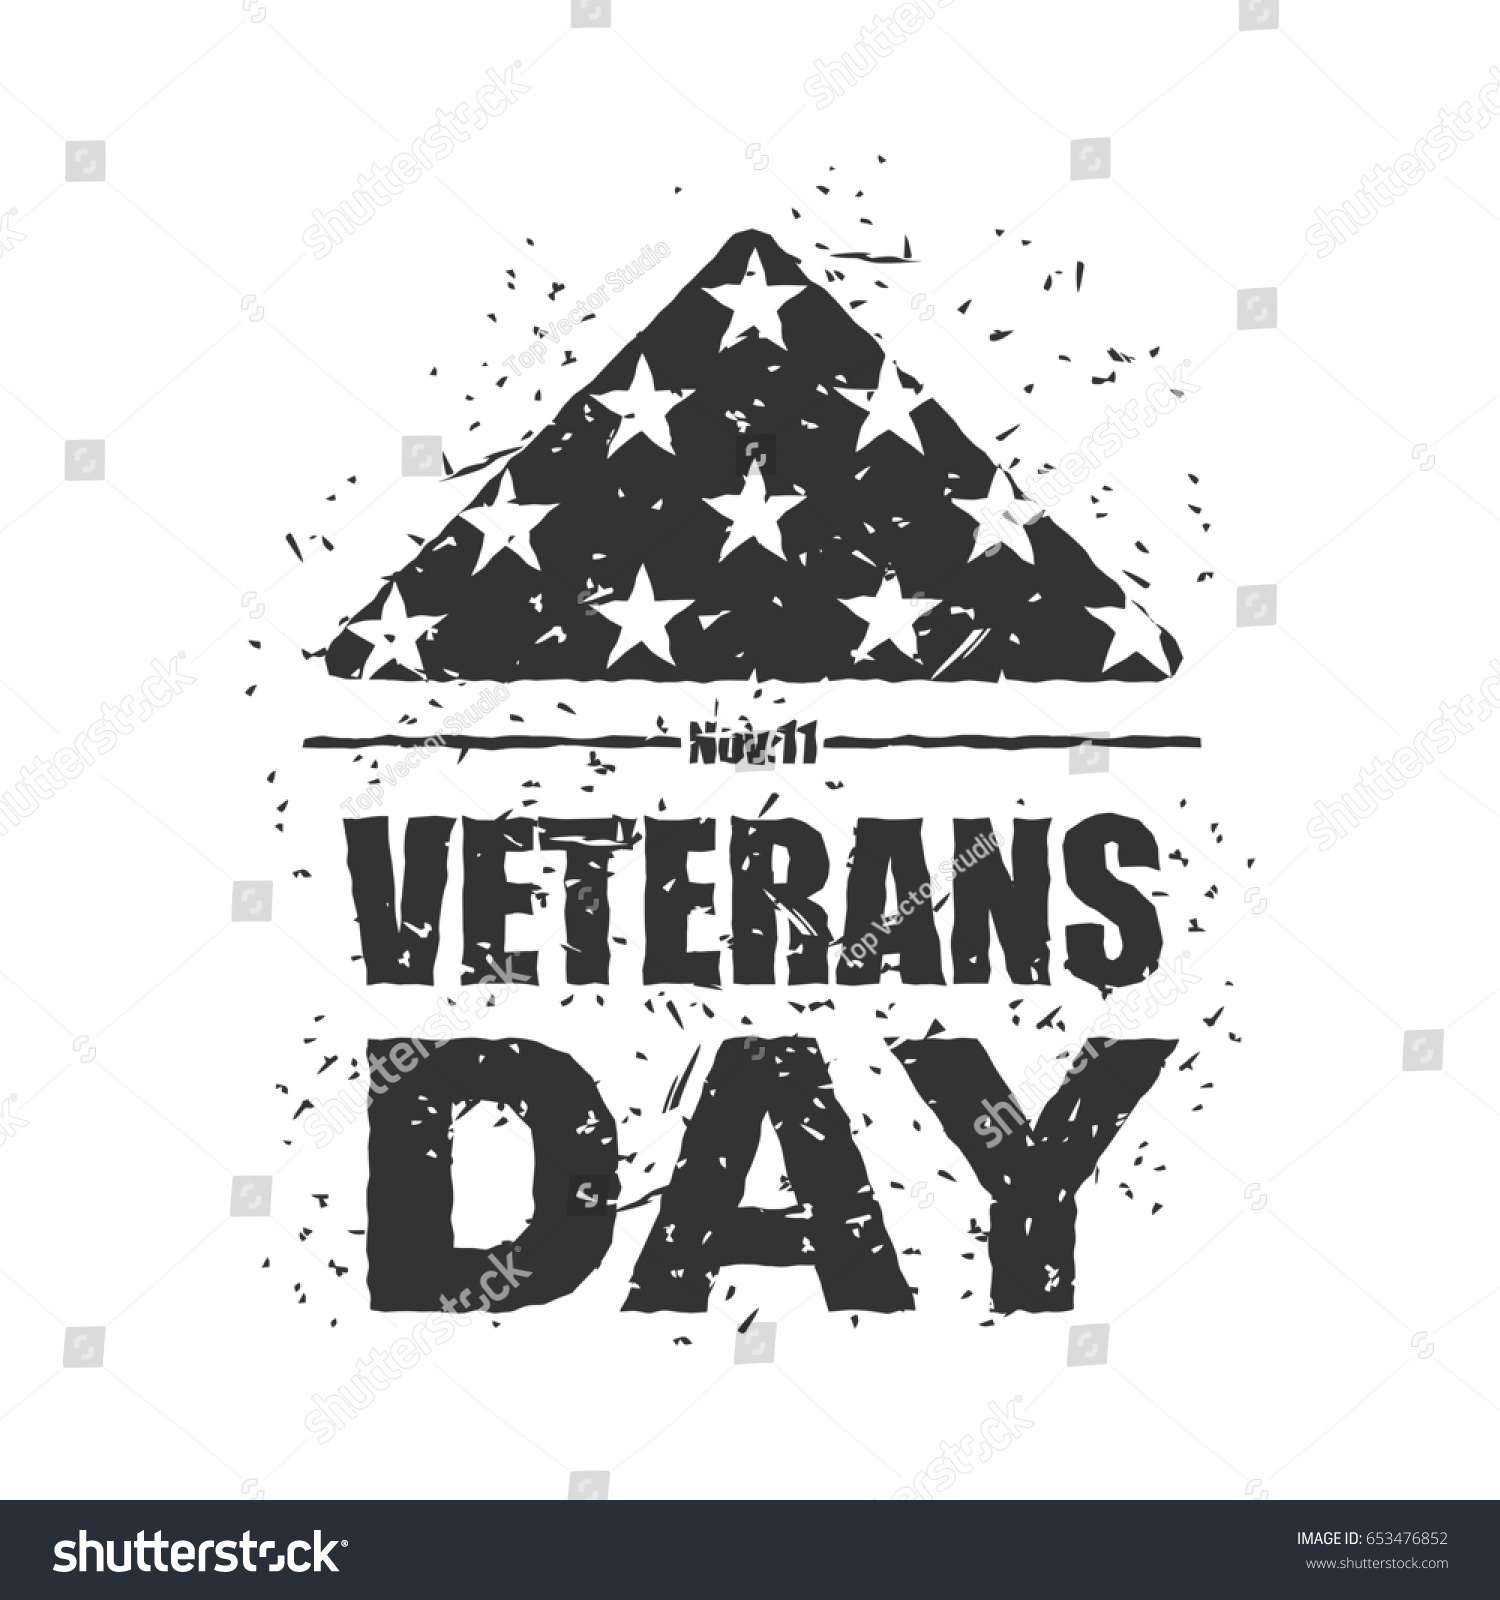 Veterans day usa flag america folded stock illustration 653476852 veterans day in usa flag america folded in triangle symbol of mourning national sign biocorpaavc